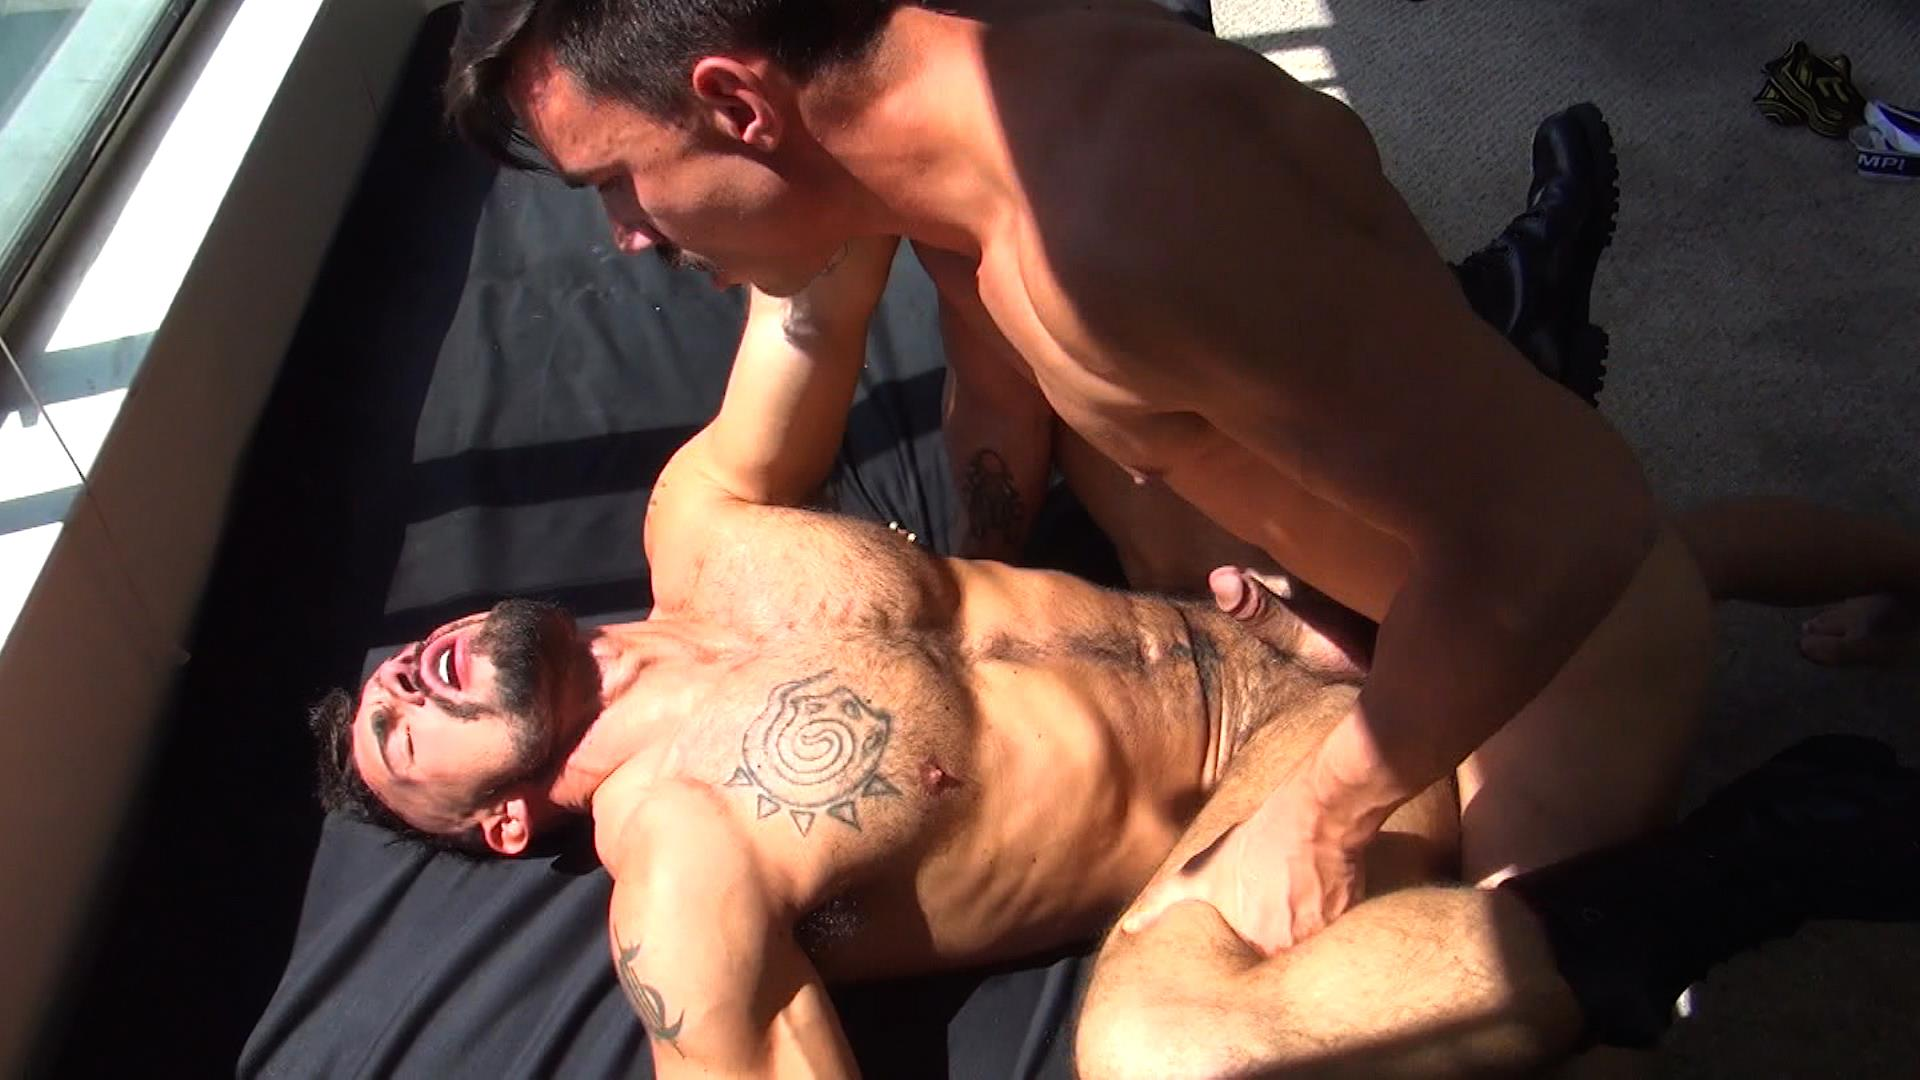 Raw-Fuck-Club-Derrick-Hanson-and-Aarin-Asker-and-Billy-Warren-and-Adam-Avery-Amateur-Gay-Porn-03 Group Sex Bareback Fucking At The Folsom Street Fair 2015